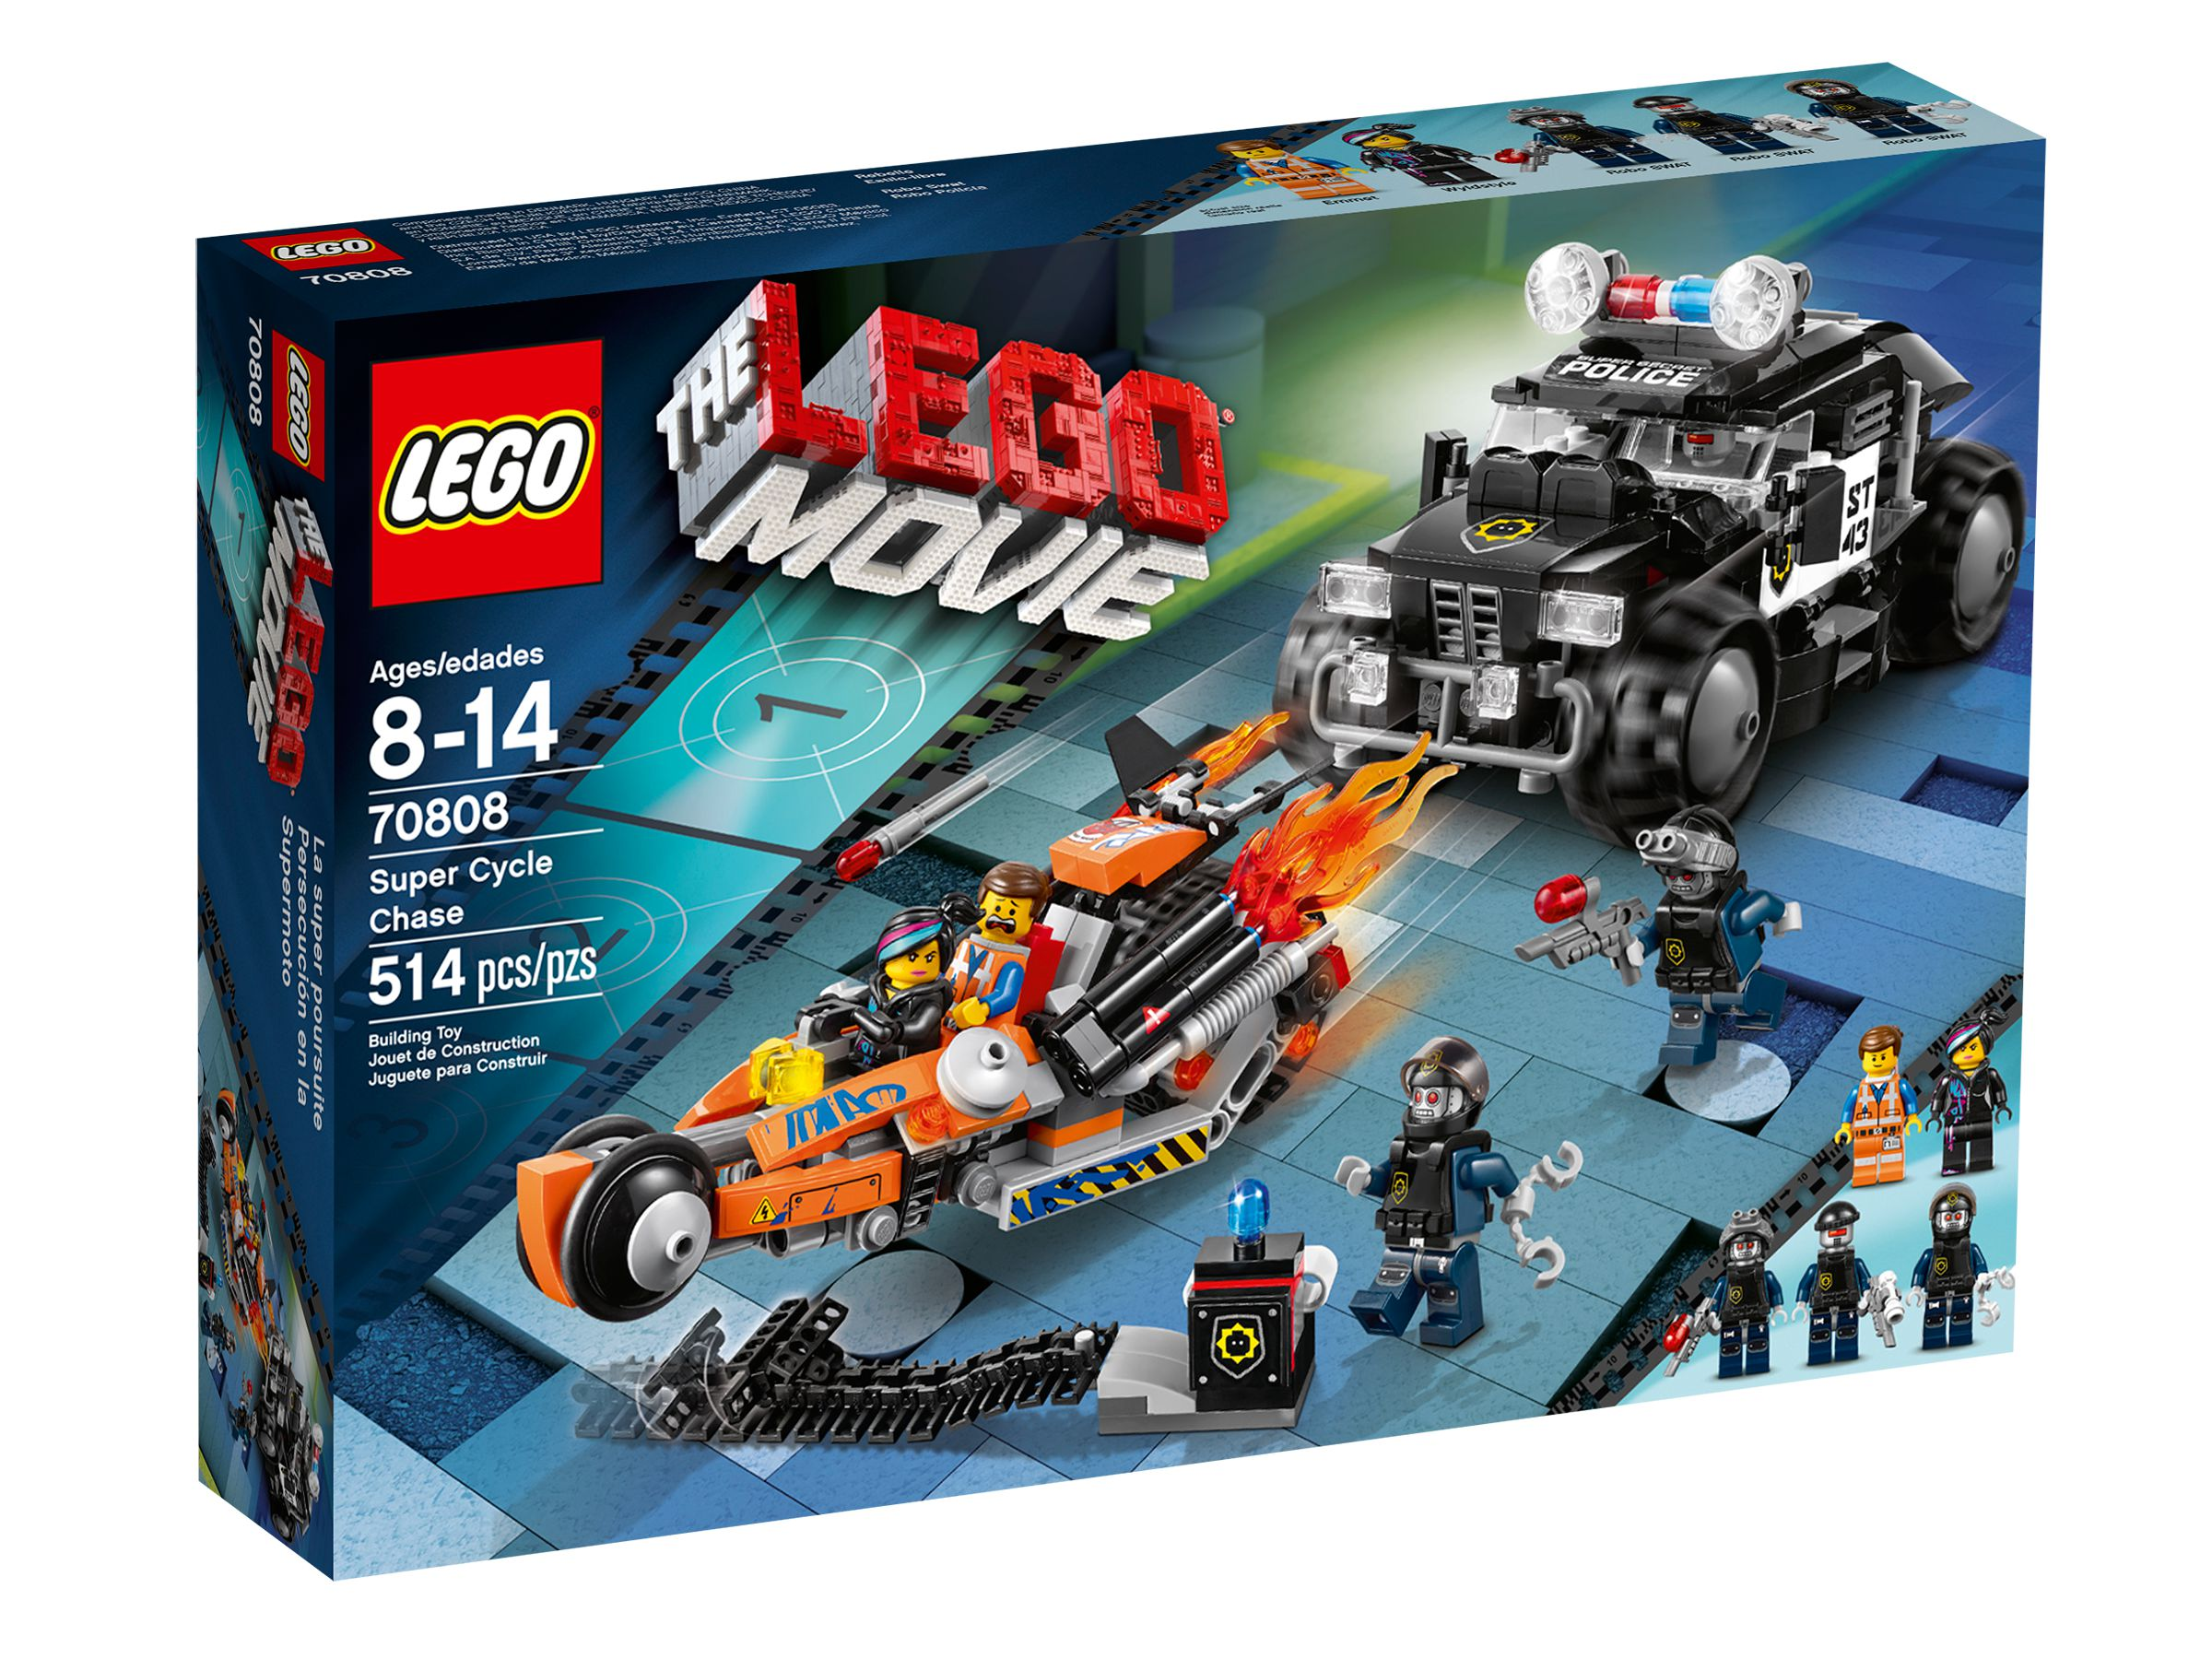 LEGO The LEGO Movie 70808 Superbike Verfolgungsrennen LEGO_70808_alt1.jpg